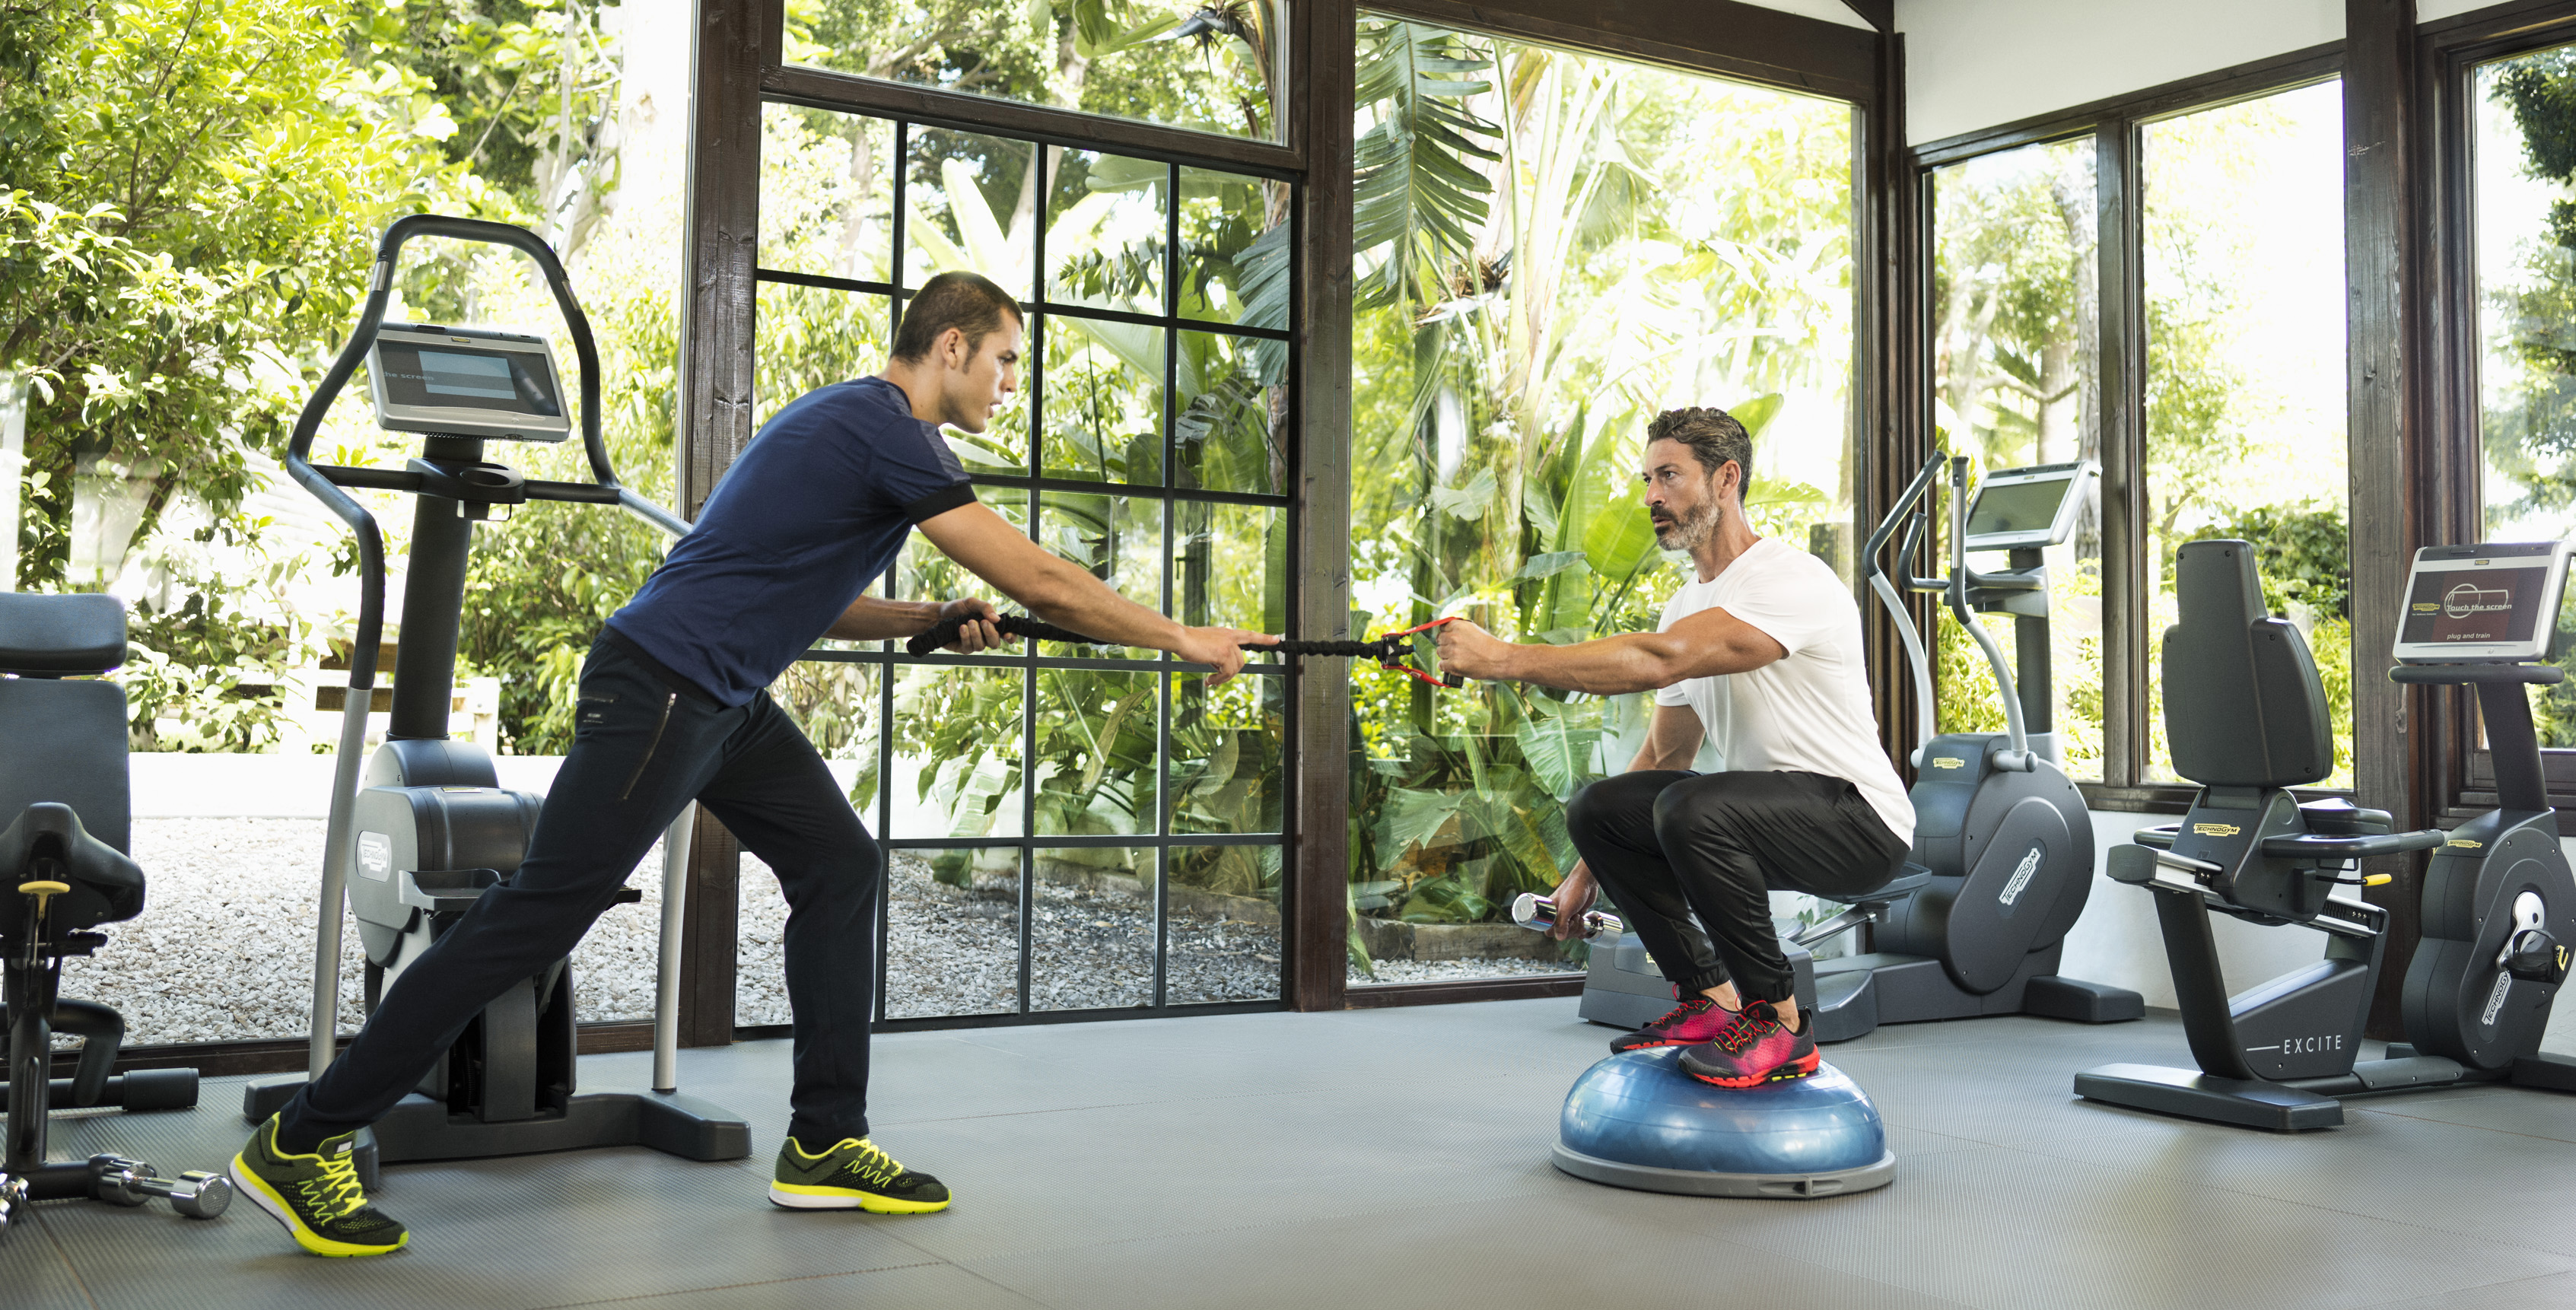 personal training at marbella club